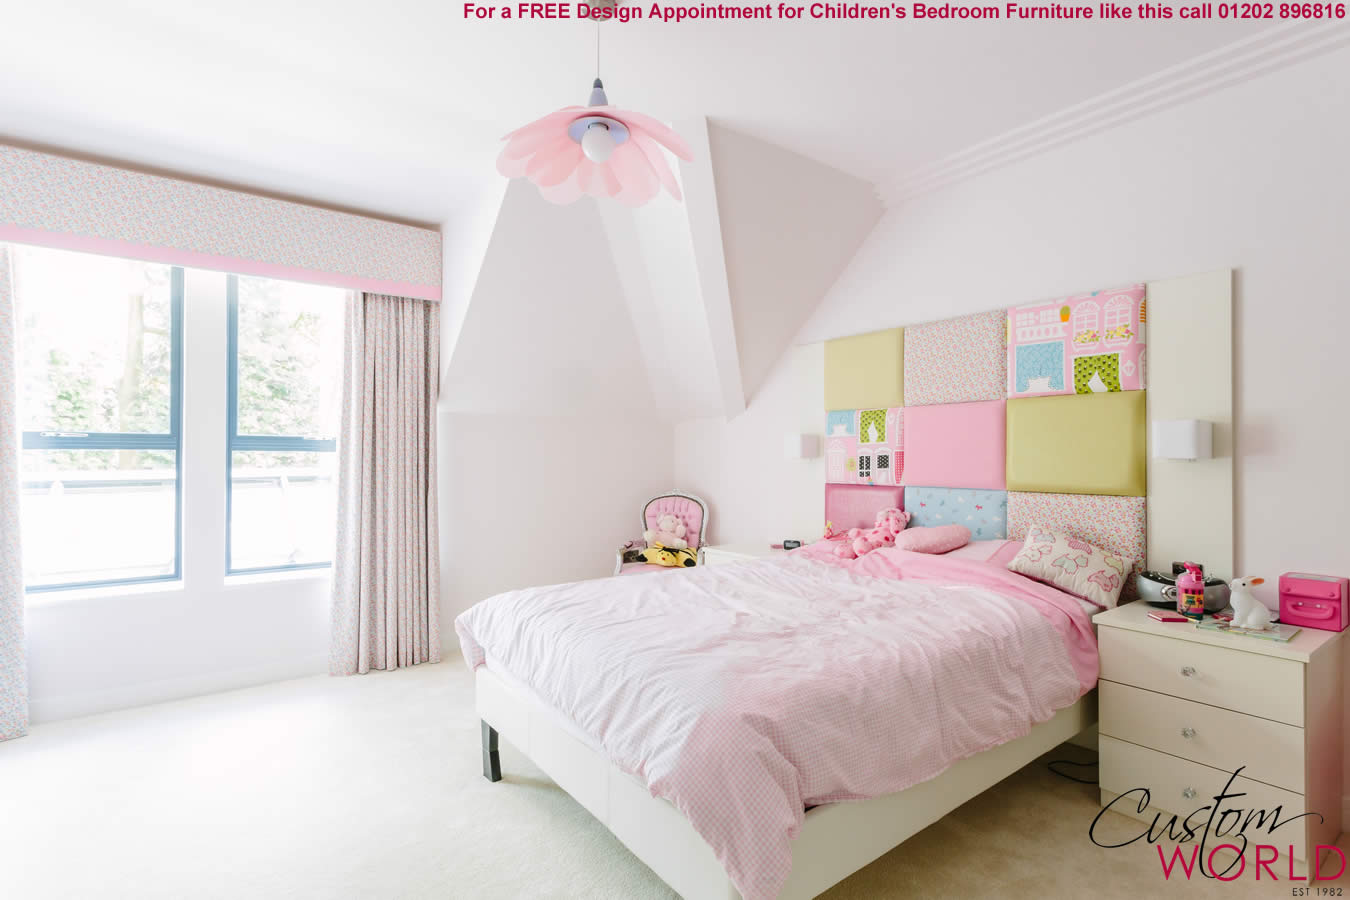 Amusing 25 kids bedroom uk inspiration of kids bedroom ideas children 39 s room decorating - Kids bedroom decoration ideas ...